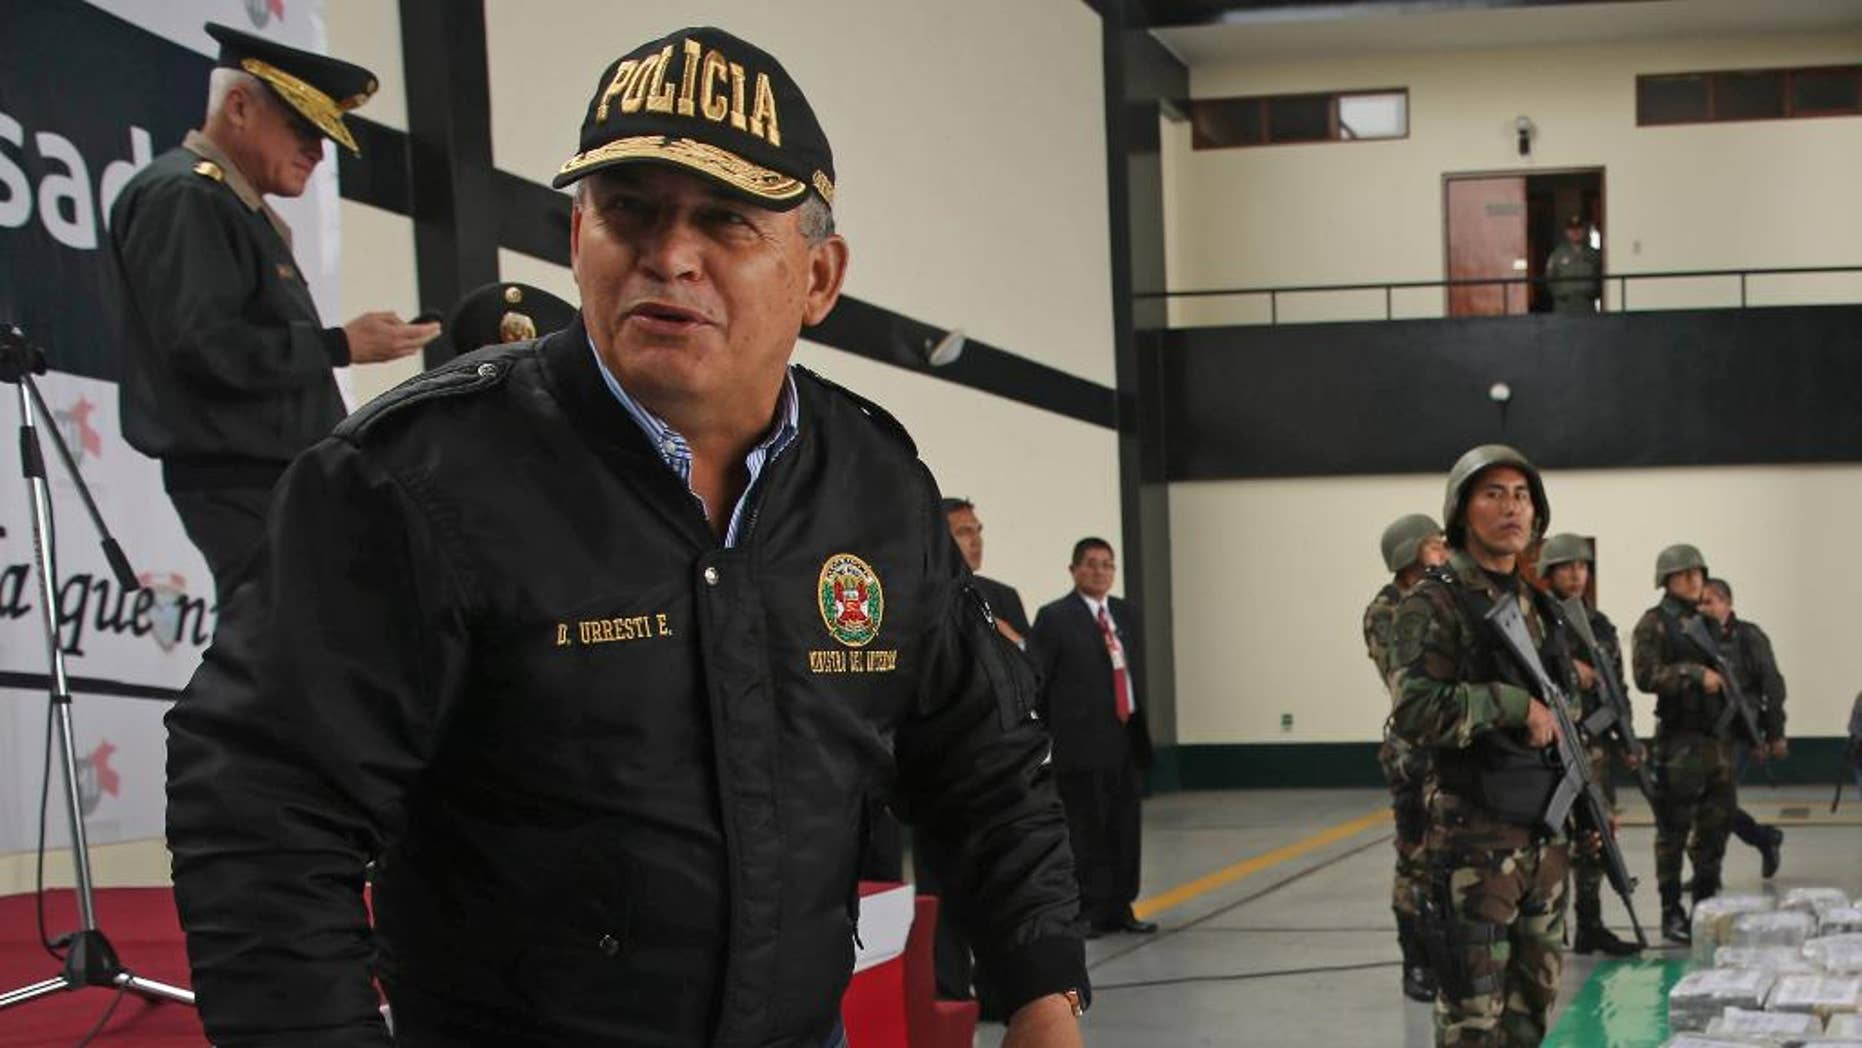 FILE - In this Sept. 1, 2014 file photo, Peru's Interior Minister Daniel Urresti talks with the press during the presentation of seized drugs at a police base in Lima, Peru. Urresti, a former army general, has been charged with murdering a journalist during the country's conflicts 26 years ago, prosecutor Luis Landa announced. Landa said in interviews published Sunday, March 1, 2105 by three newspapers that he is seeking a 25-year prison term for Urresti based on evidence that, as local army intelligence chief at the time, he was responsible for the murder of Hugo Bustios. (AP Photo/Martin Mejia, File)